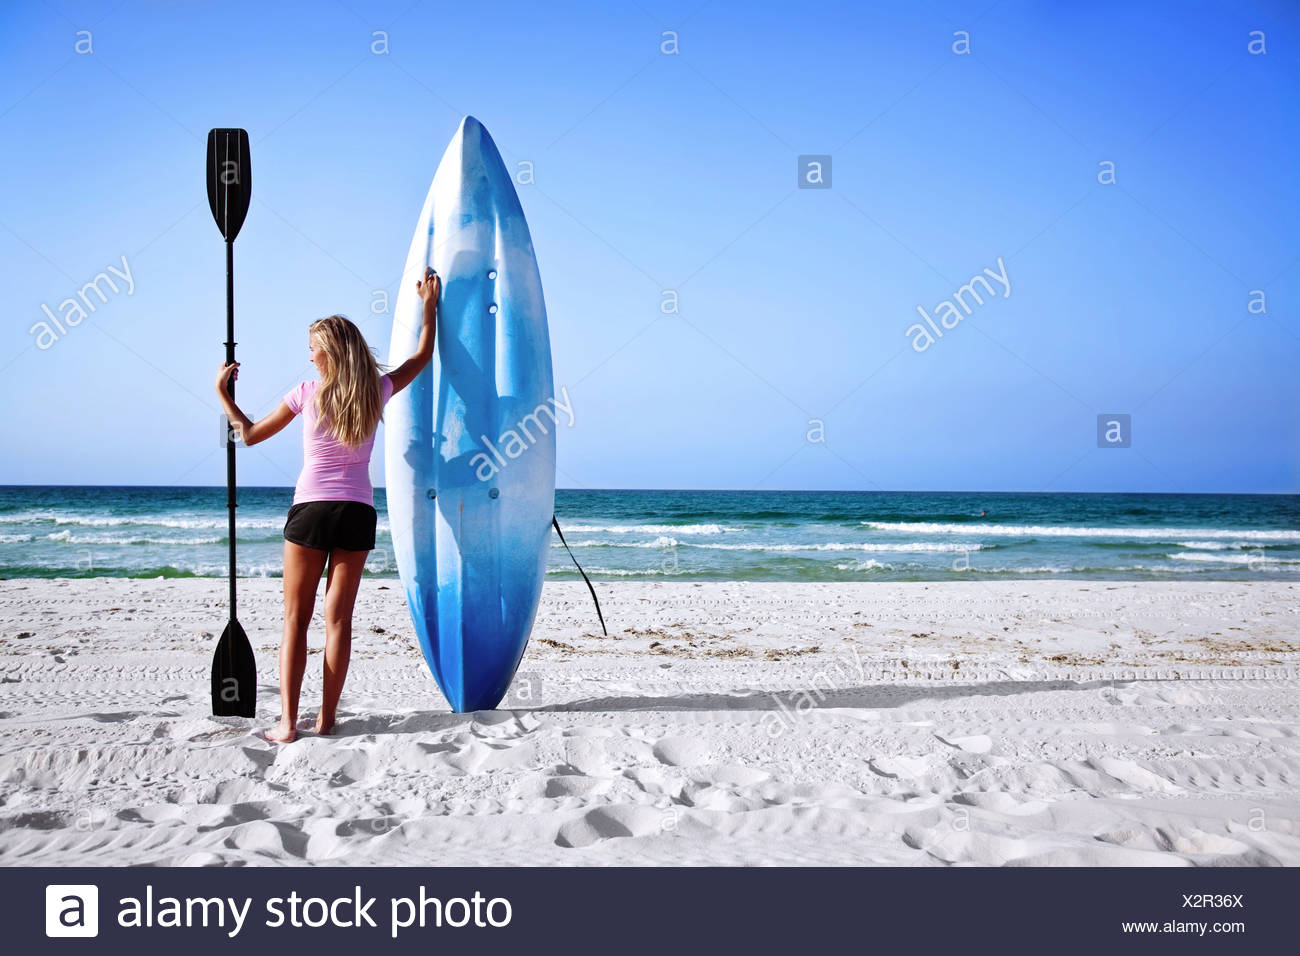 A girl holds up her sea kayak and paddle on Pensacola Beach, Florida. - Stock Image